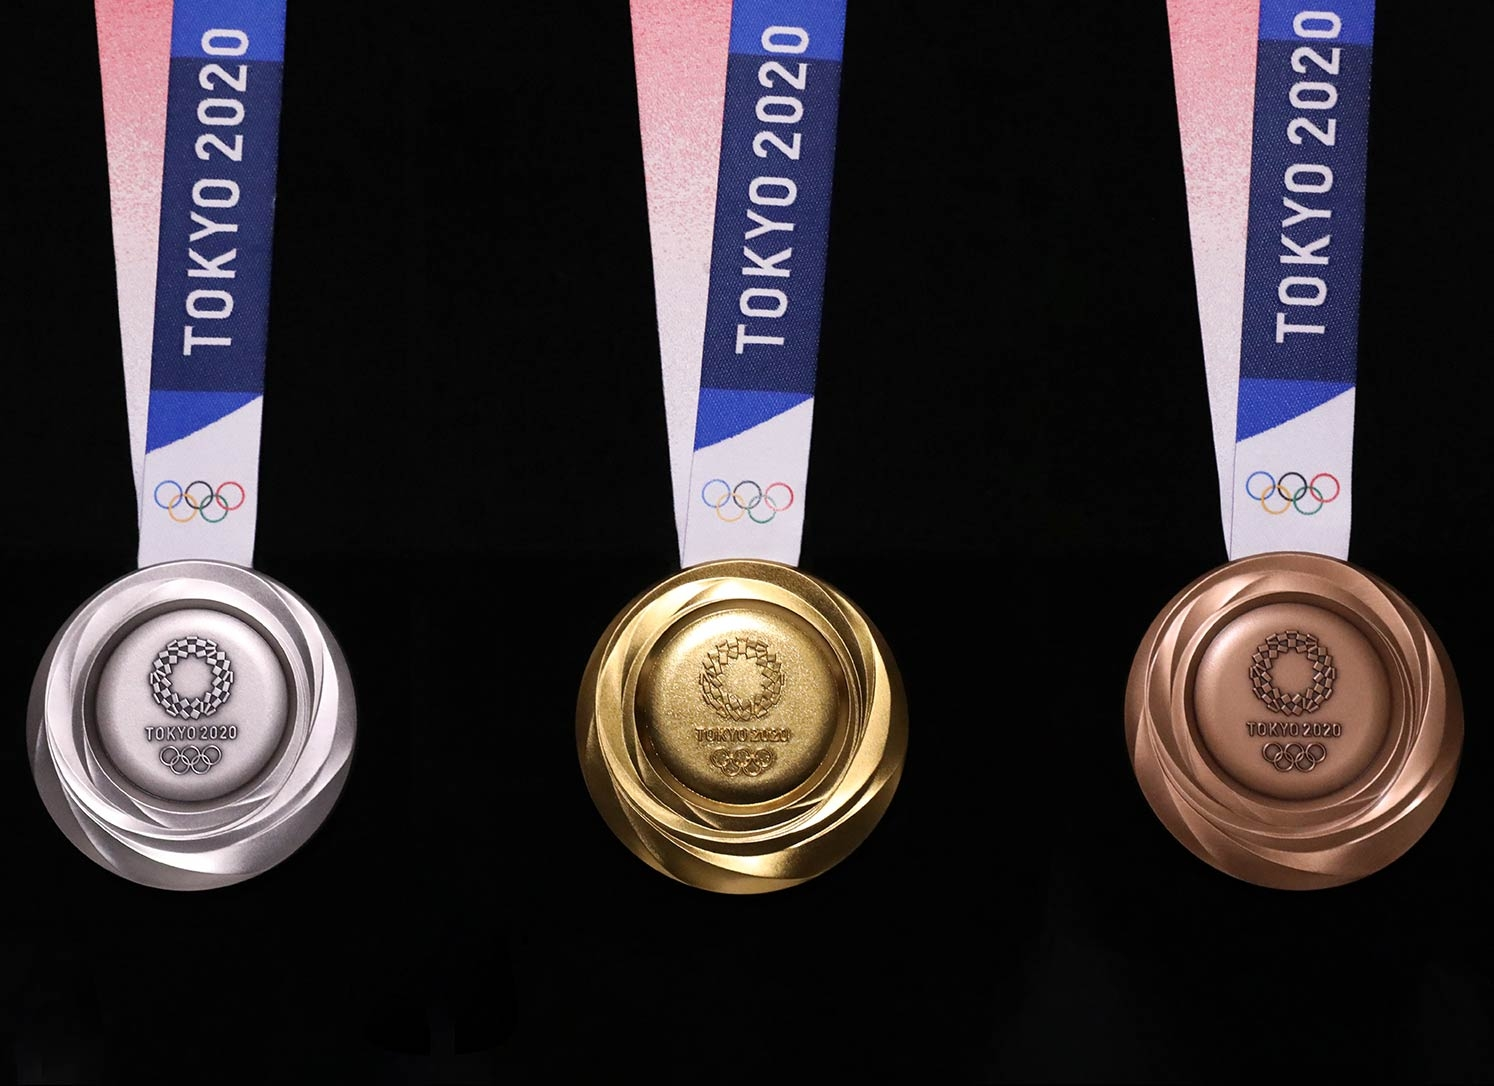 The Tokyo 2020 Olympic medal design has been unveiled